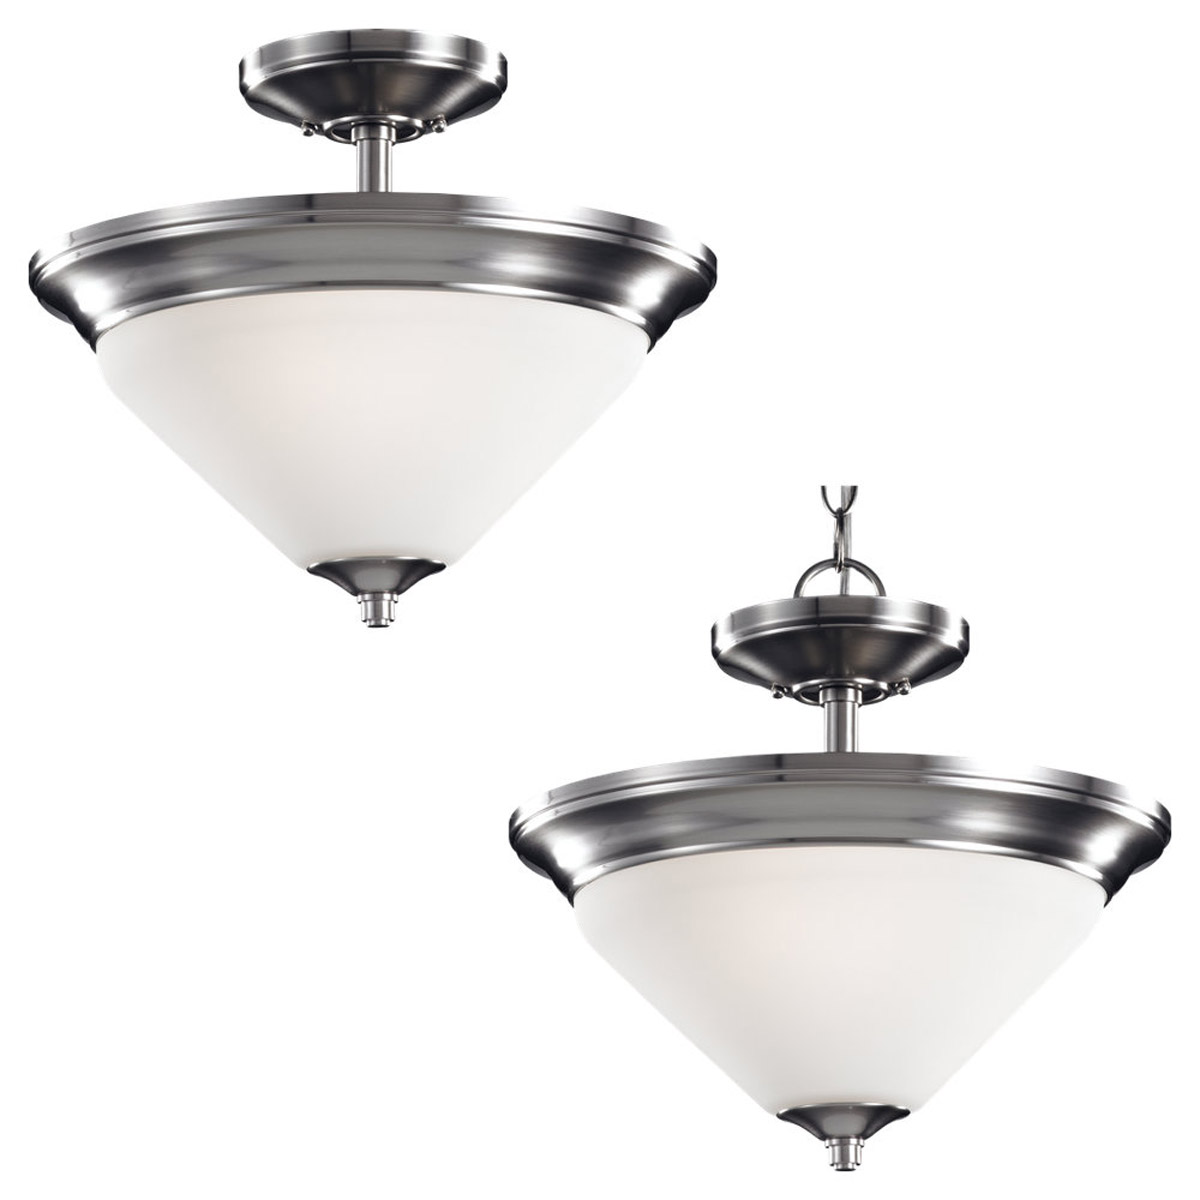 Sea Gull Lighting Belair 2 Light Semi-Flush / Pendant in Brushed Nickel 77790-962